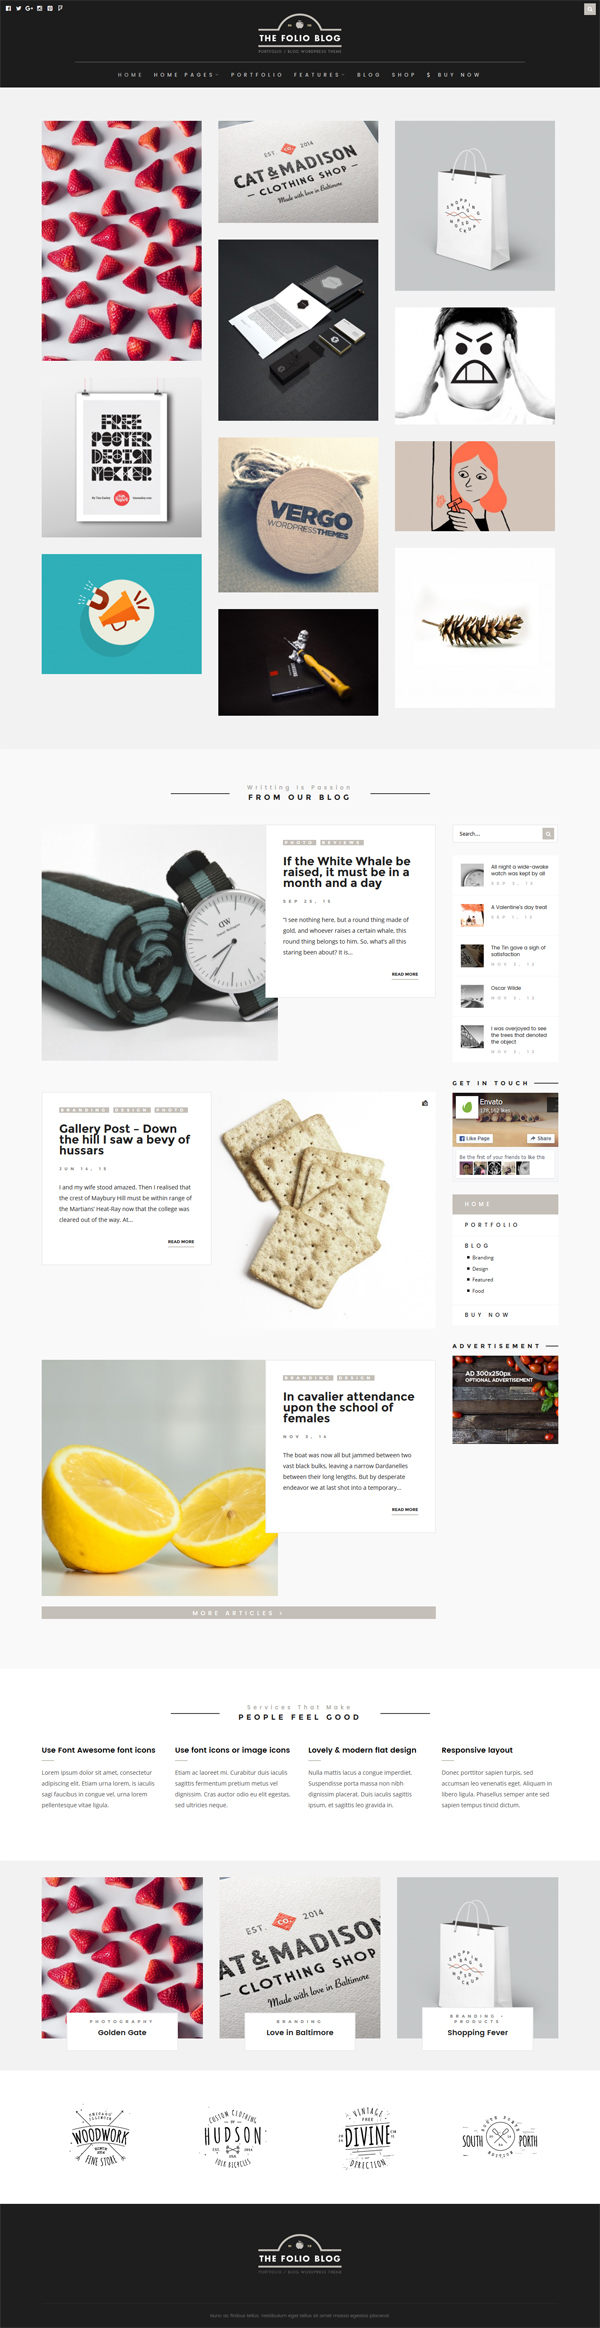 FolioBlog – Creative & Responsive Theme For Artists & Bloggers